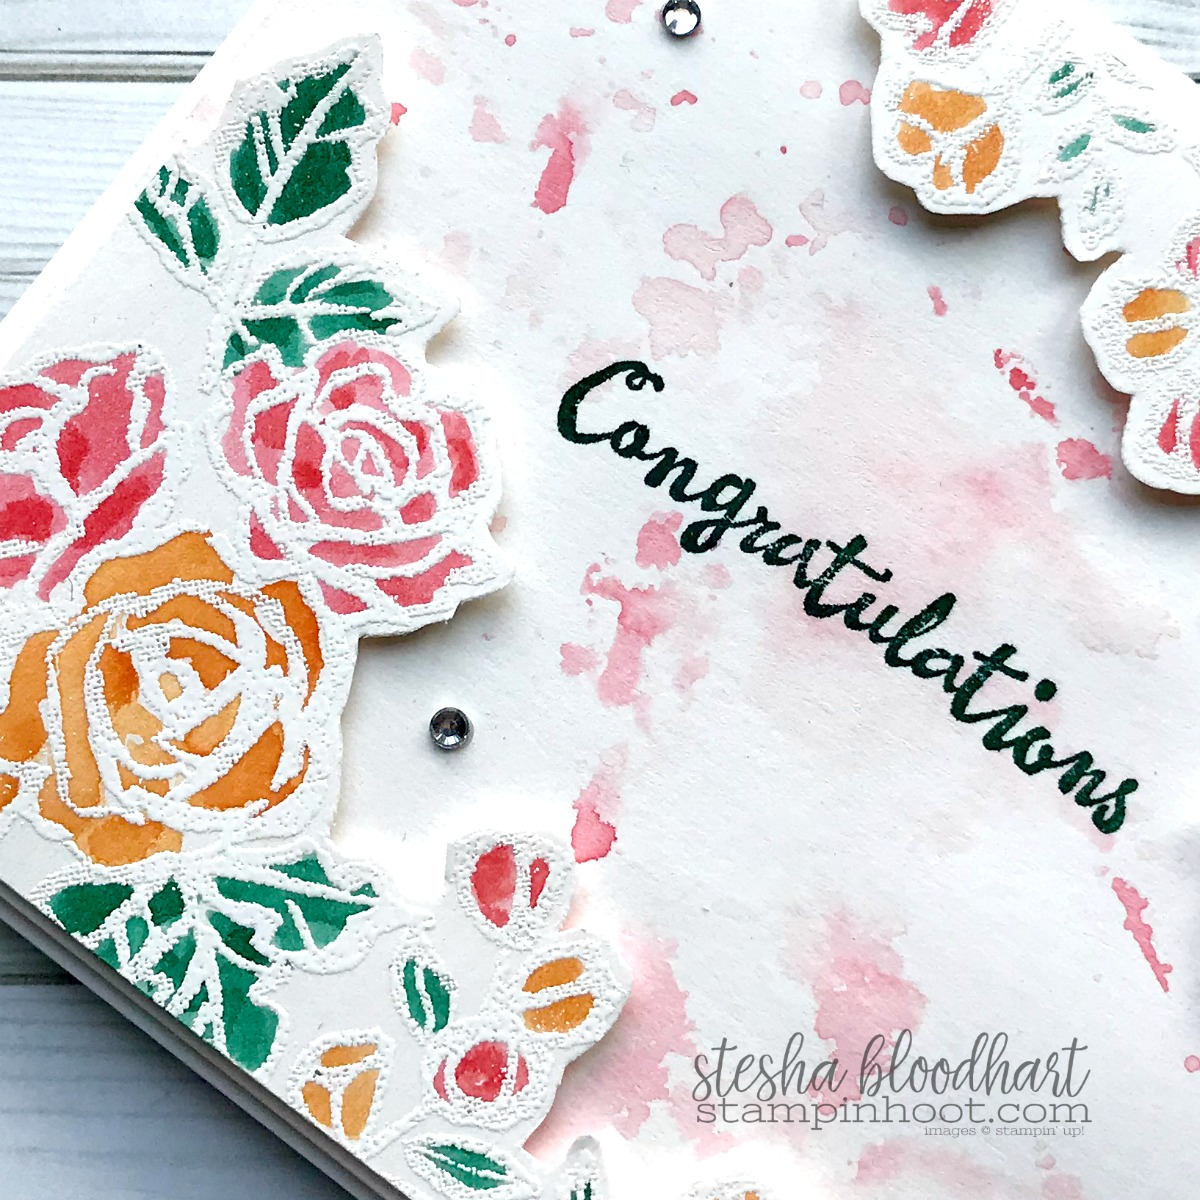 Petal Palette Wedding Card created by Stesha Bloodhart, Stampin' Hoot! for #GDP132 Case the Designer Challenge #GDP132 #steshabloodhart #stampinhoot